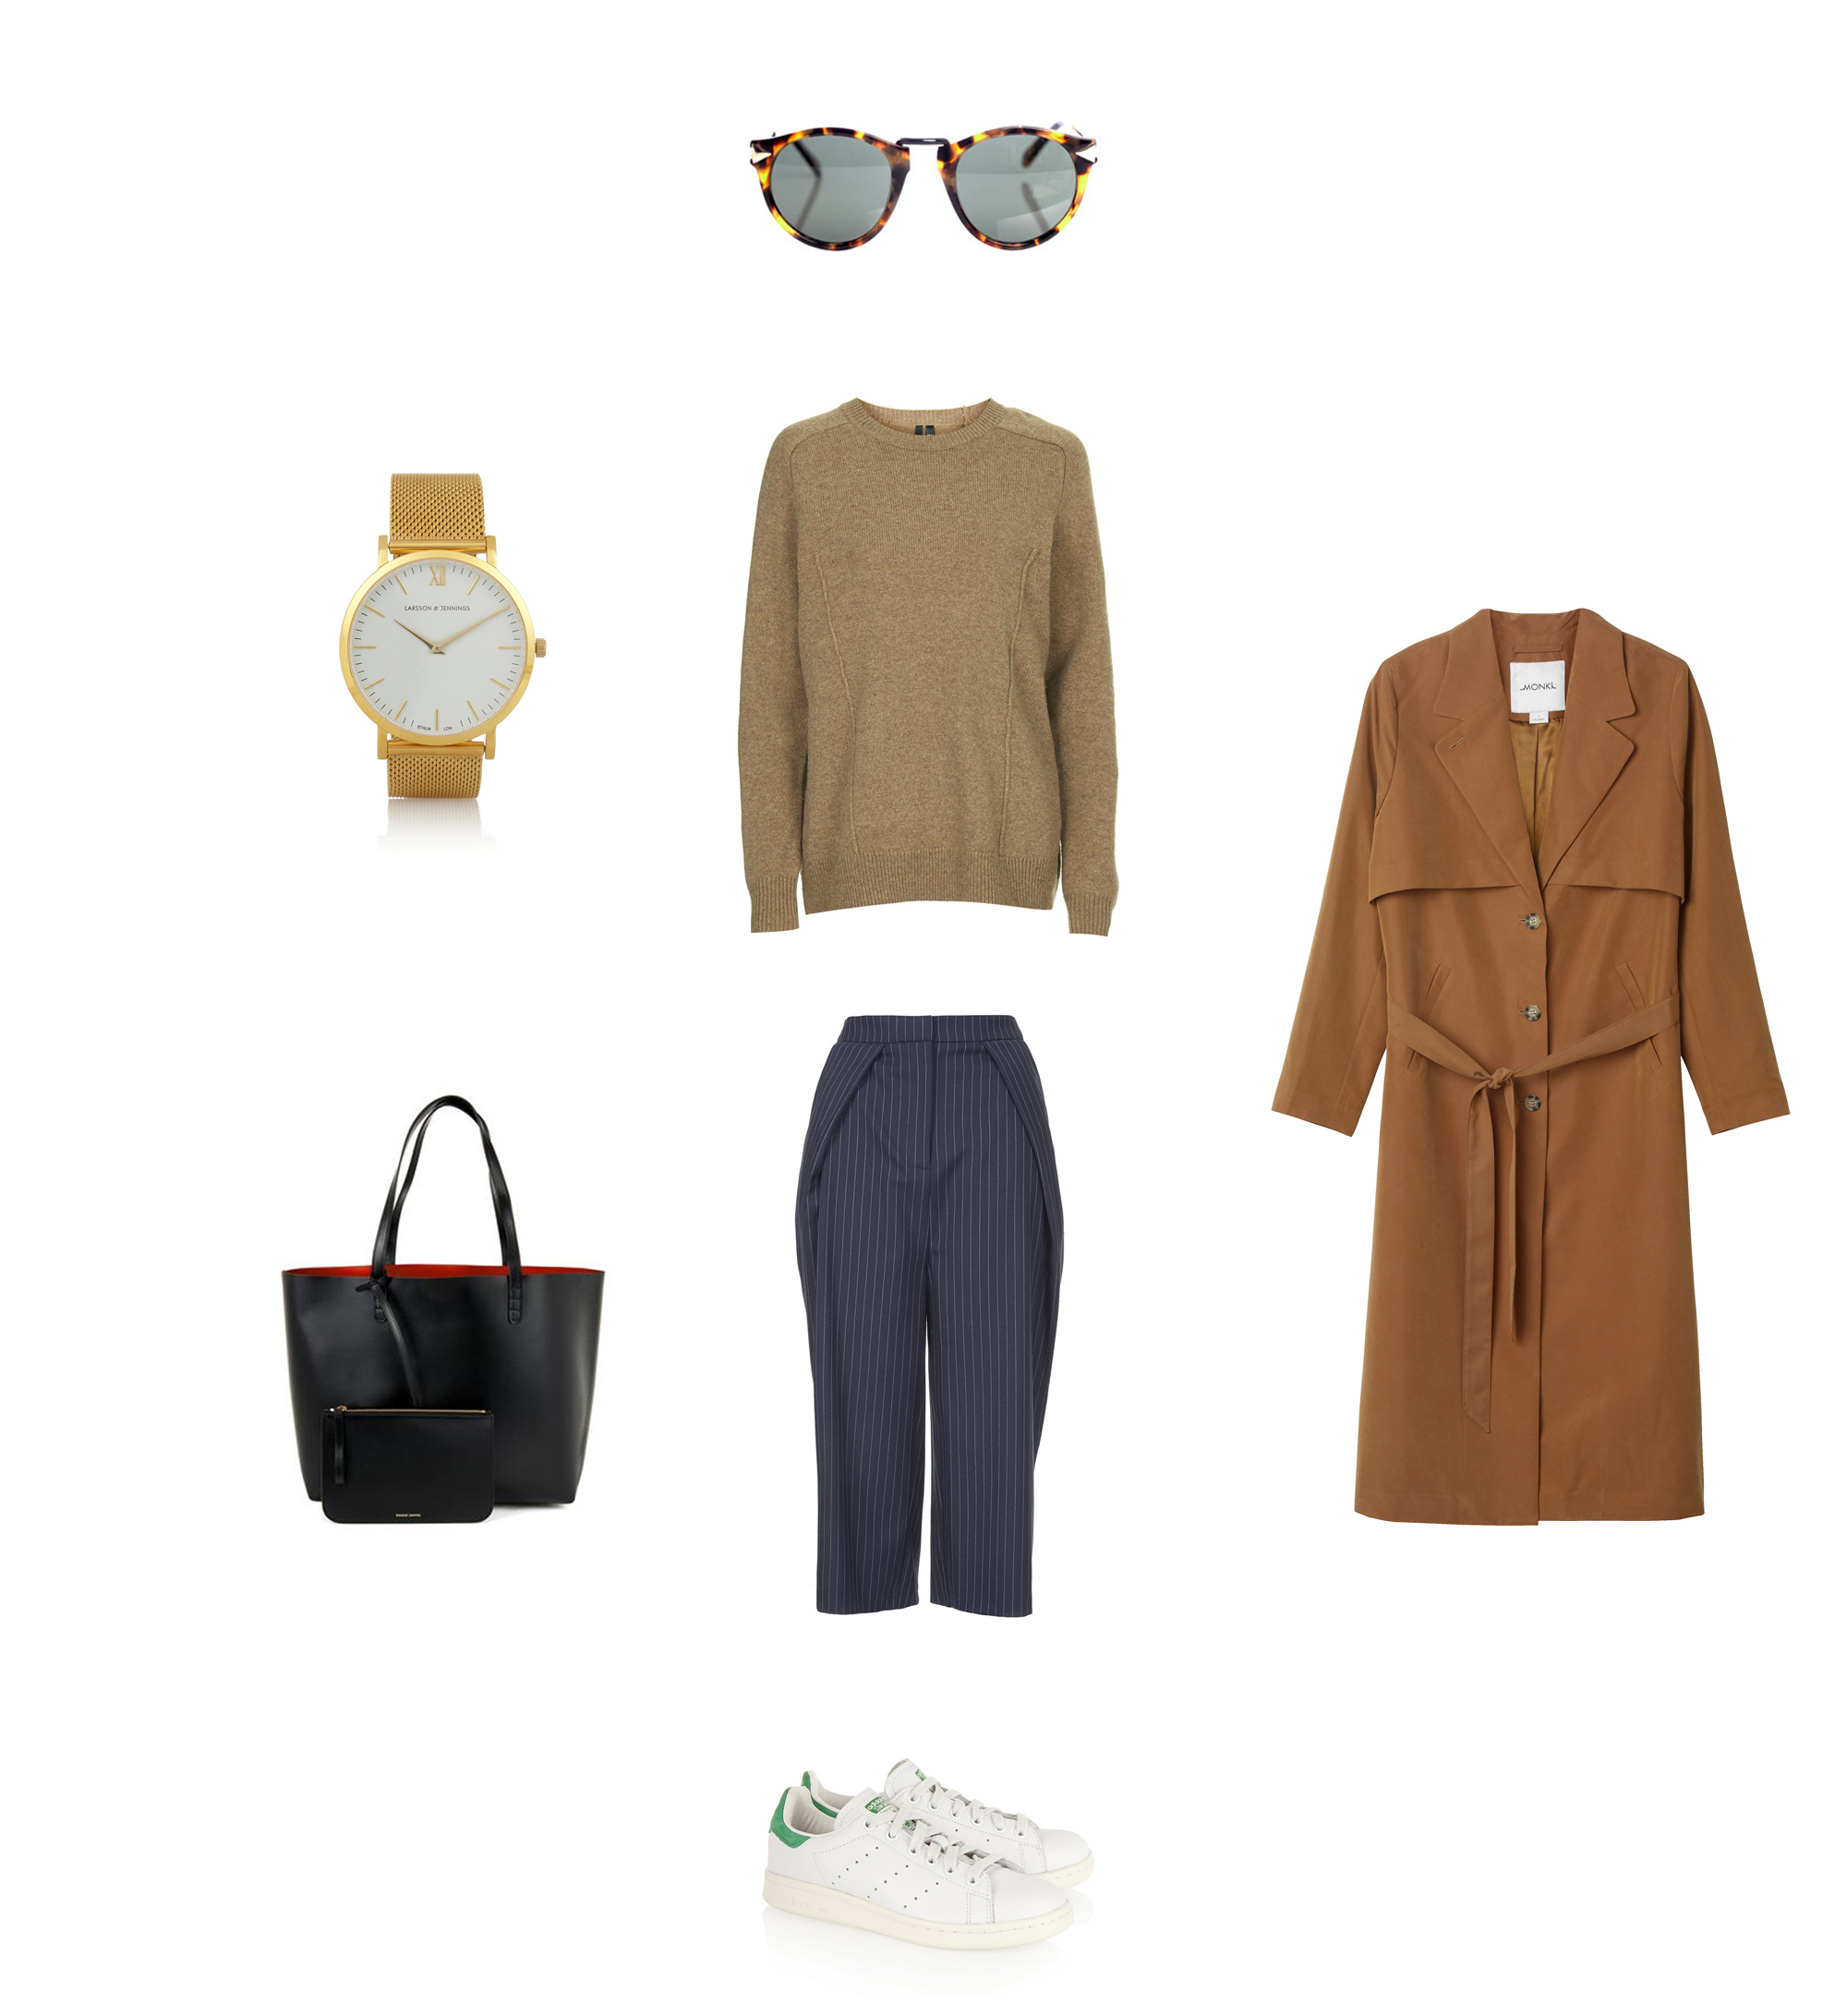 Clochet-adidas-stan-smith-mansur-gavriel-shopping-bag-monki-duster-coat-karen-waler-sunnies_